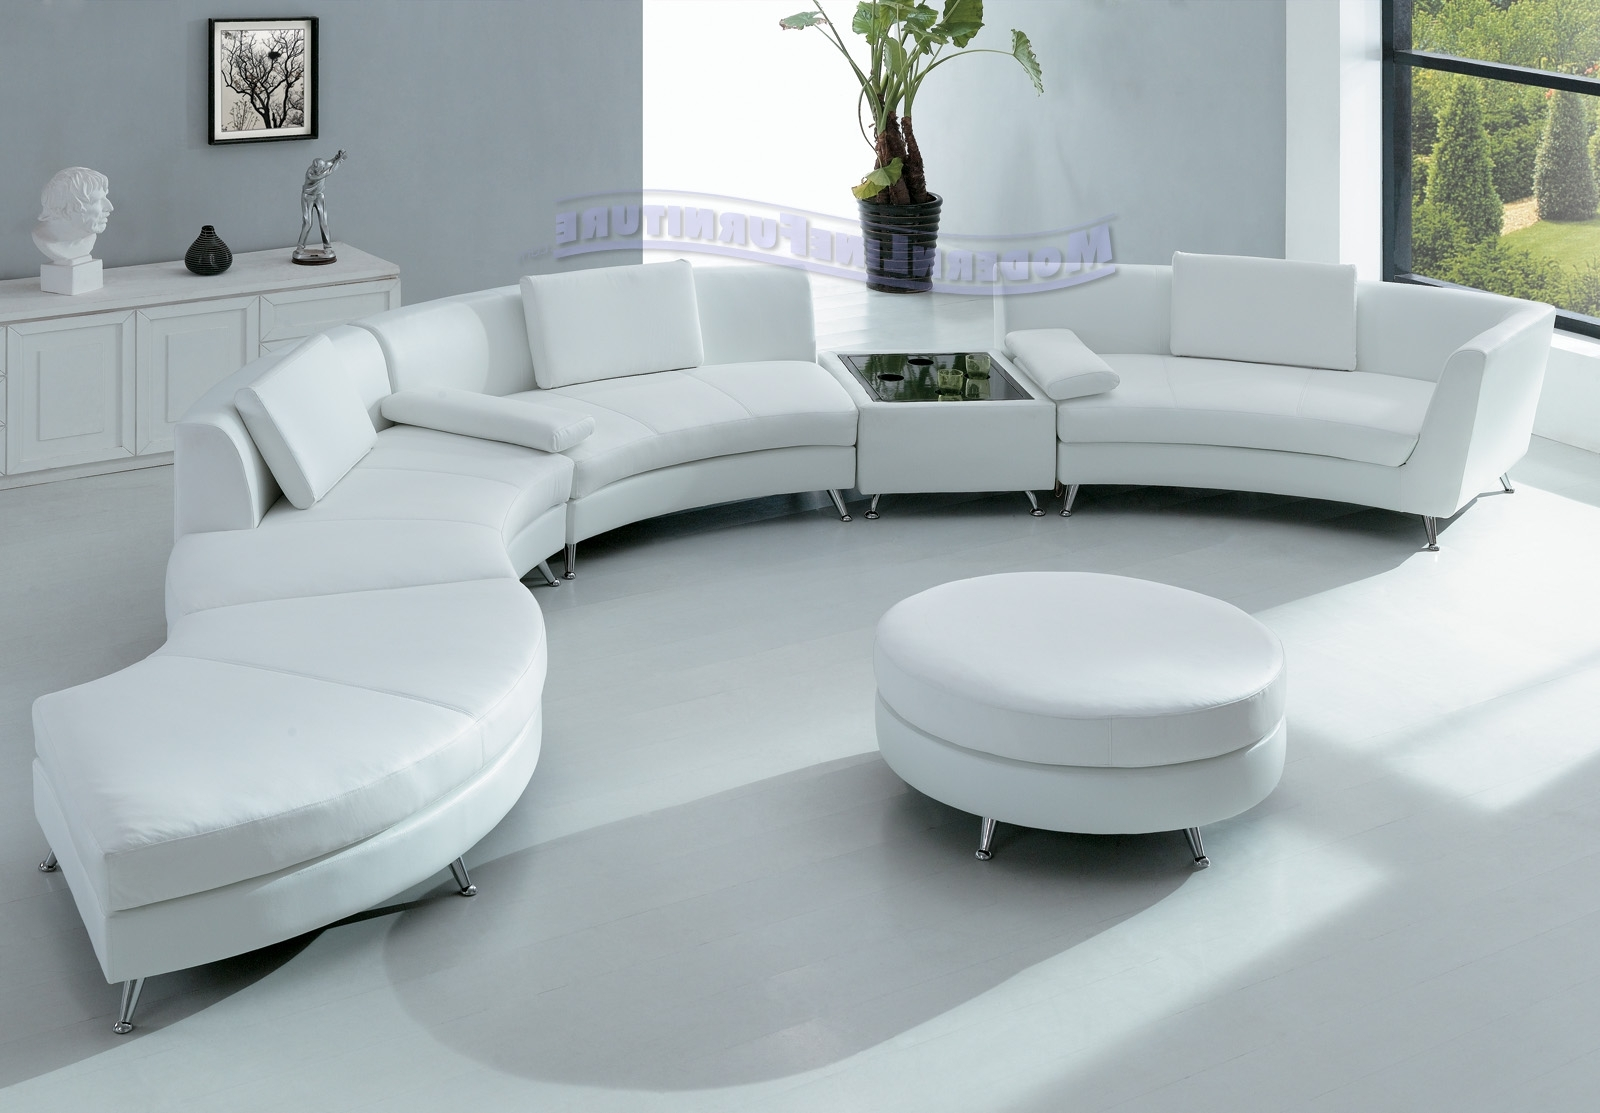 Round Sofas Inside Most Popular Hotel Lobby Round Sofa Striking Living Room Leather Set Interior (View 12 of 20)